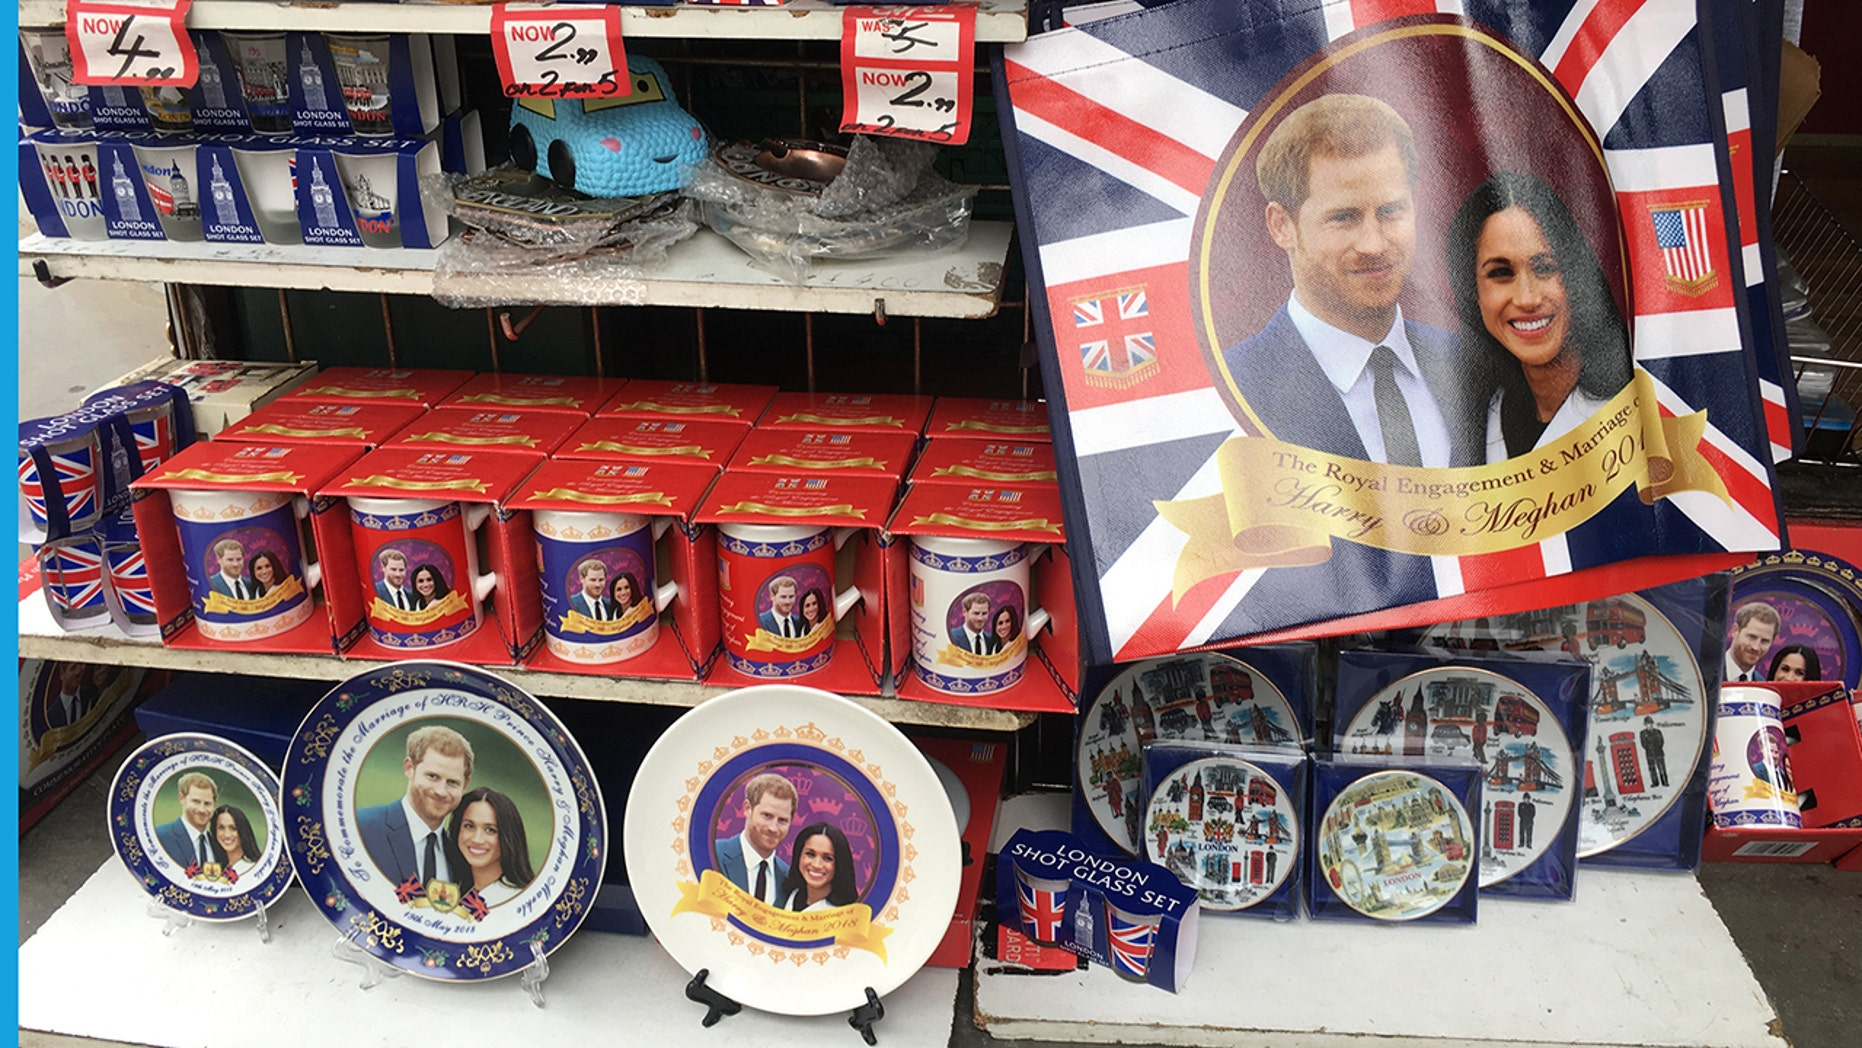 Fans of the royal family can get all sorts of gifts featuring Meghan Markle and Prince Harry to commemorate the big day.